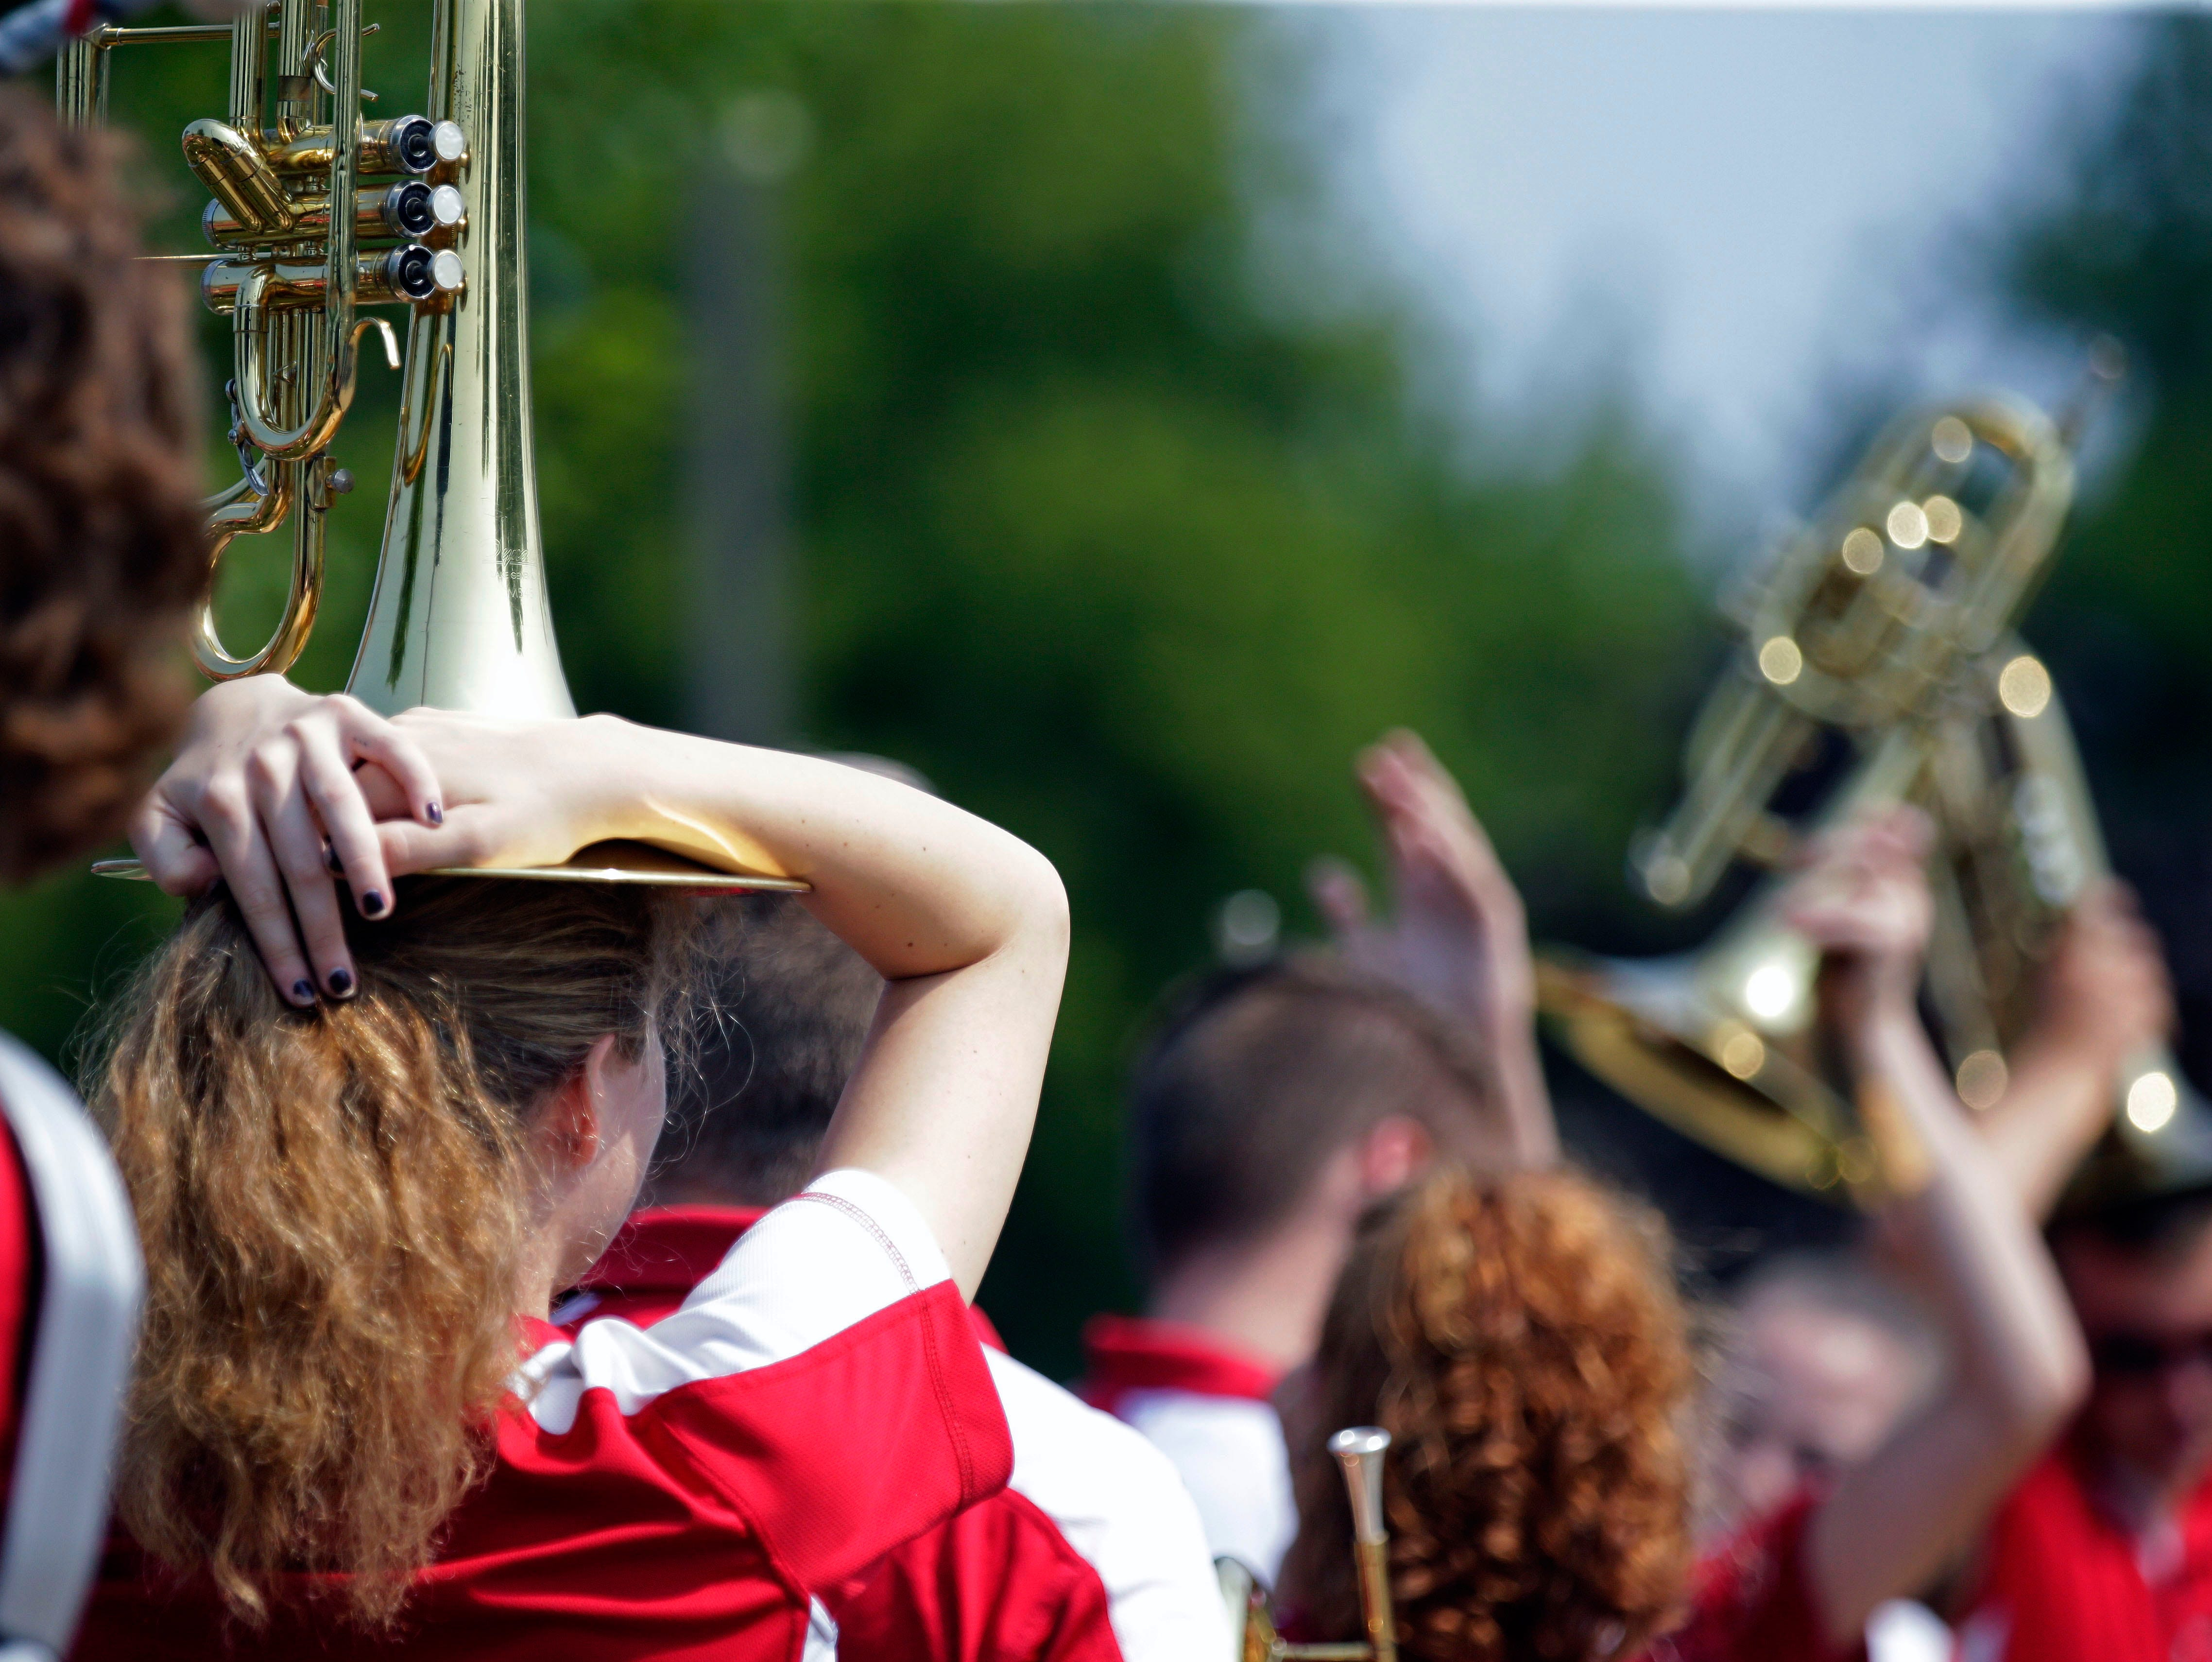 Members of the Pulaski High School Band wait for the start of the Hamburger Parade during the 30th annual Burger Fest Saturday, August 11, 2018, in Seymour, Wis.